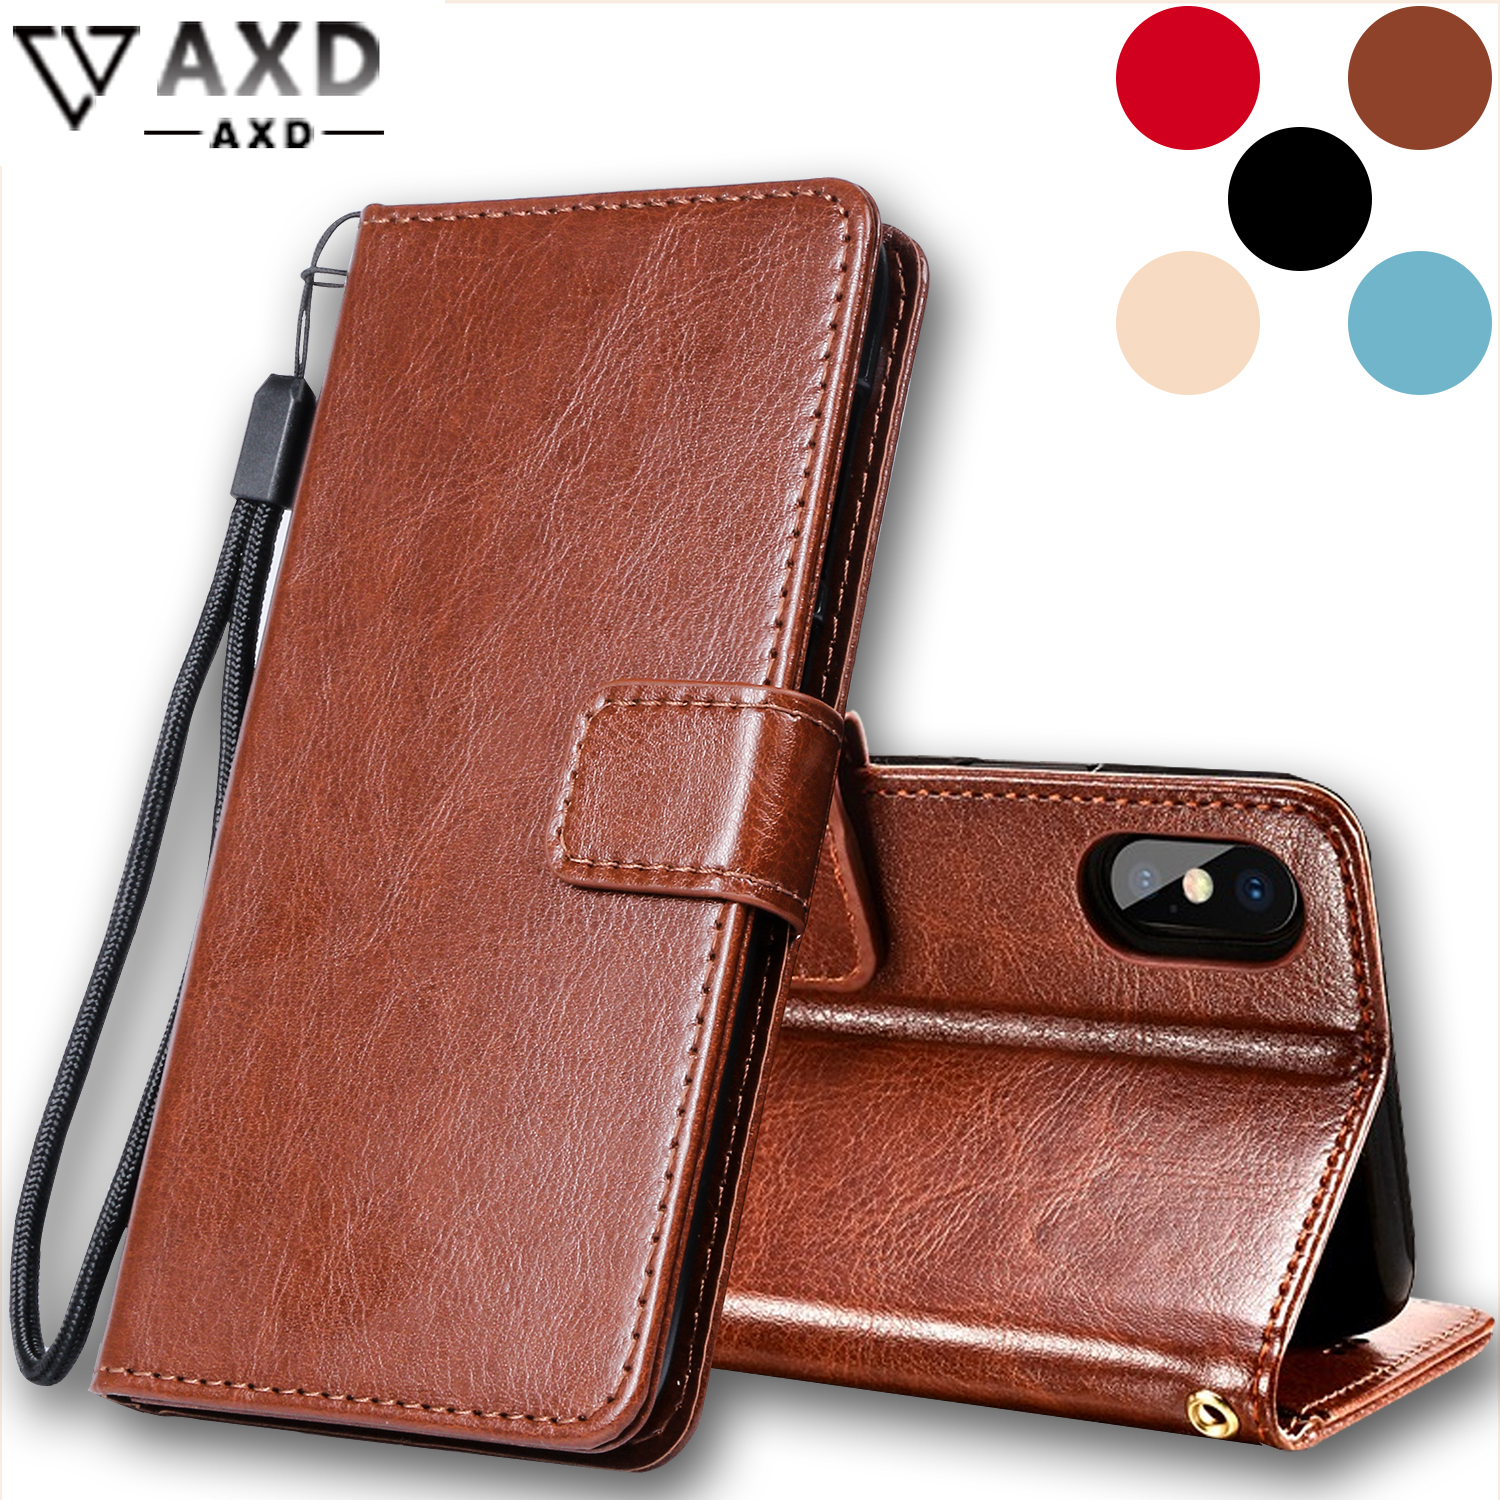 Flip leather case for BQ 5065 Choice 5070 Magic 5201 Space fundas wallet style protective stand cover for 5504 Strike selfie max in Flip Cases from Cellphones Telecommunications